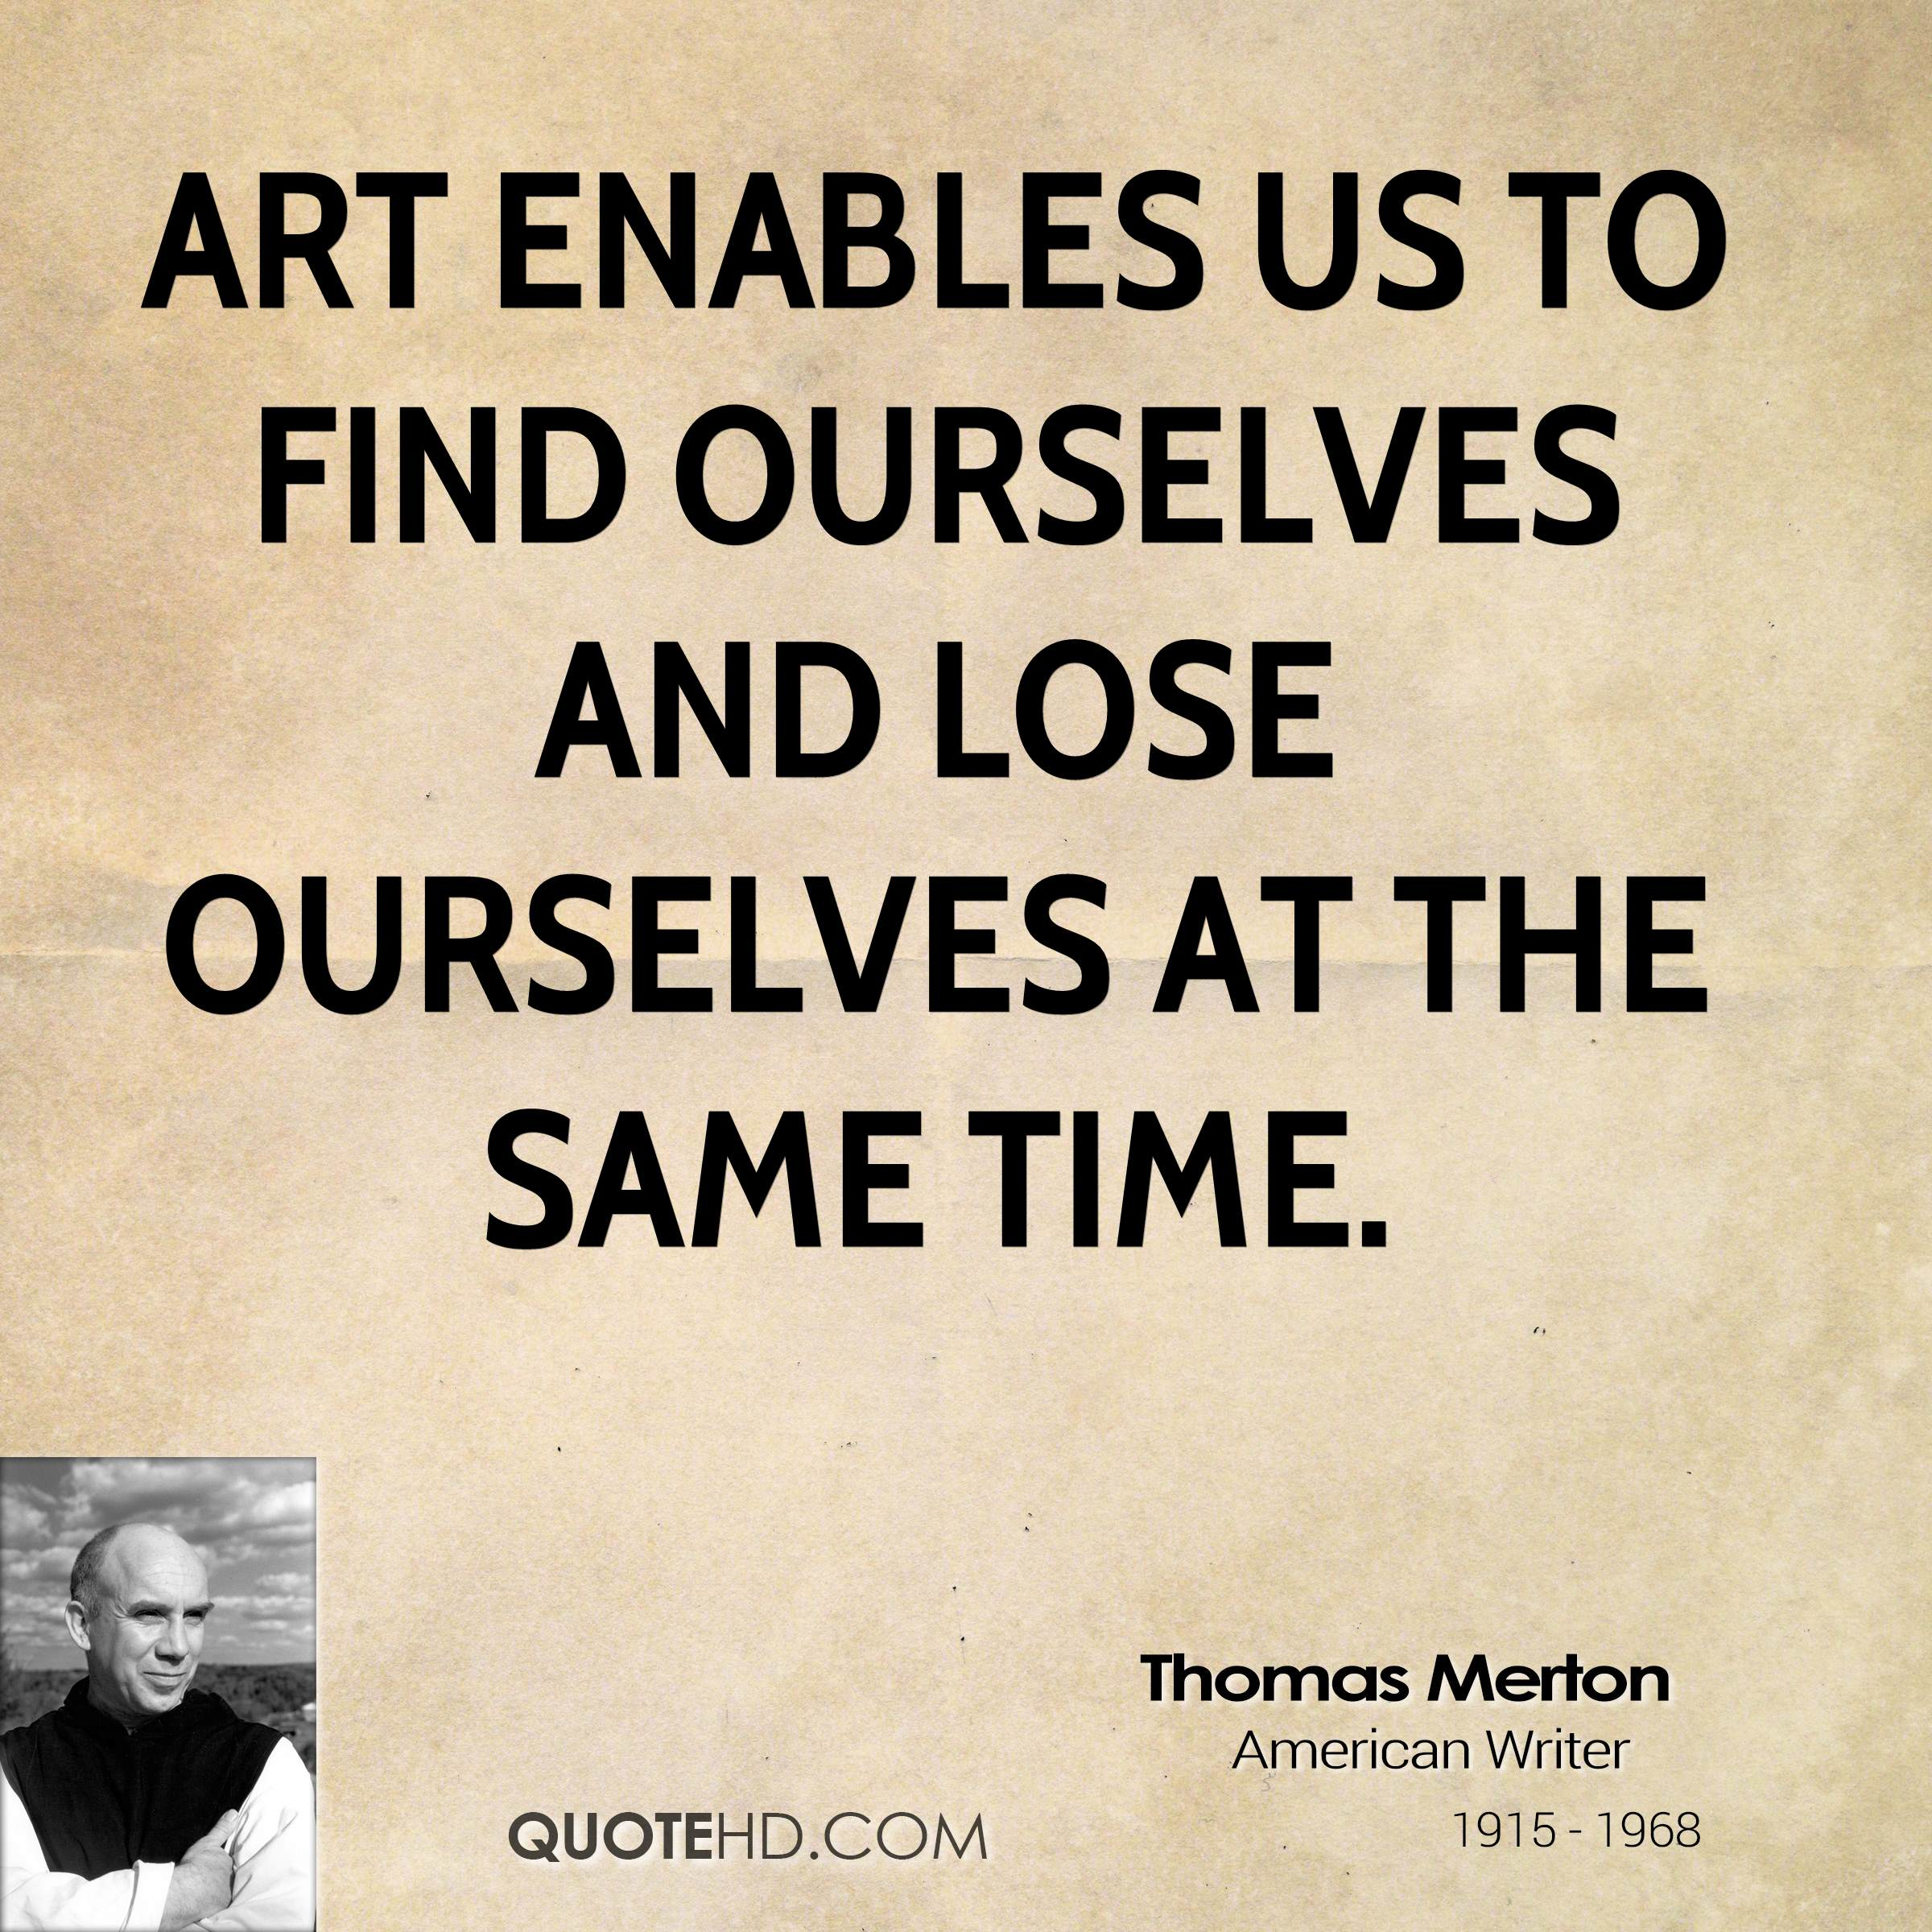 Art enables us to find ourselves and lose ourselves at the same time.